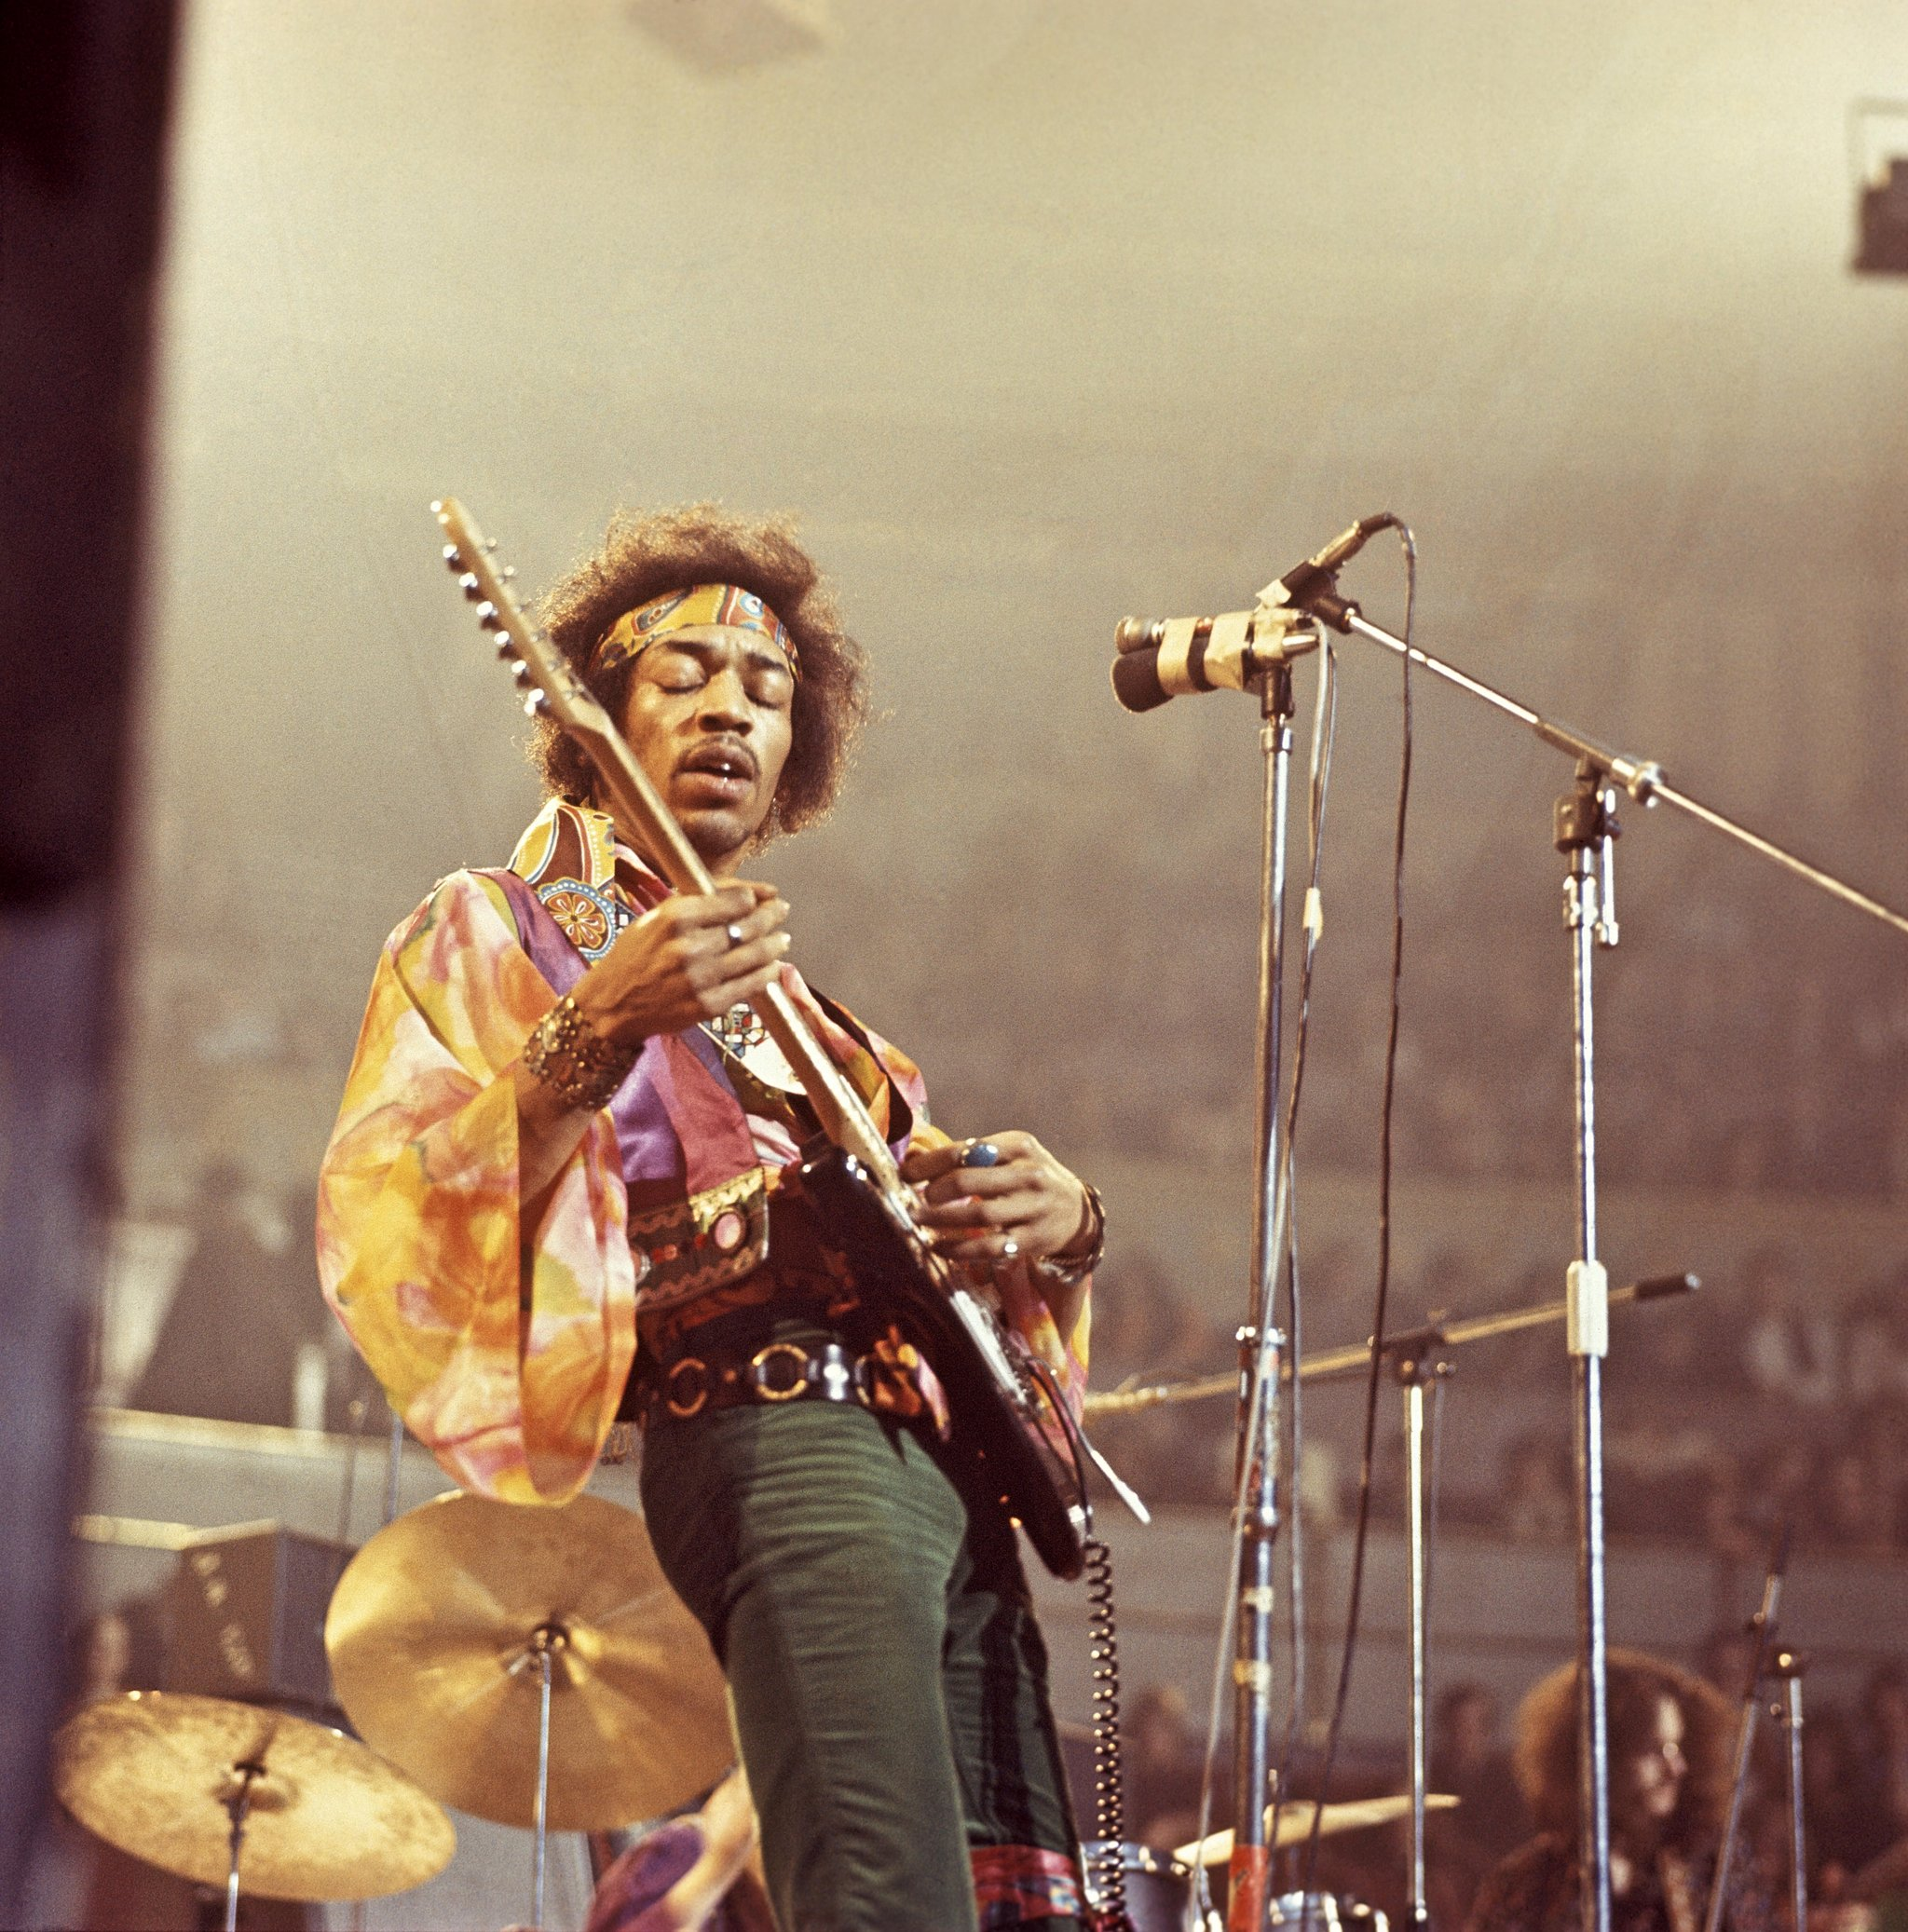 The Details of Jimi Hendrix's Death Are Still Pretty Frightening, Even 50 Years Later